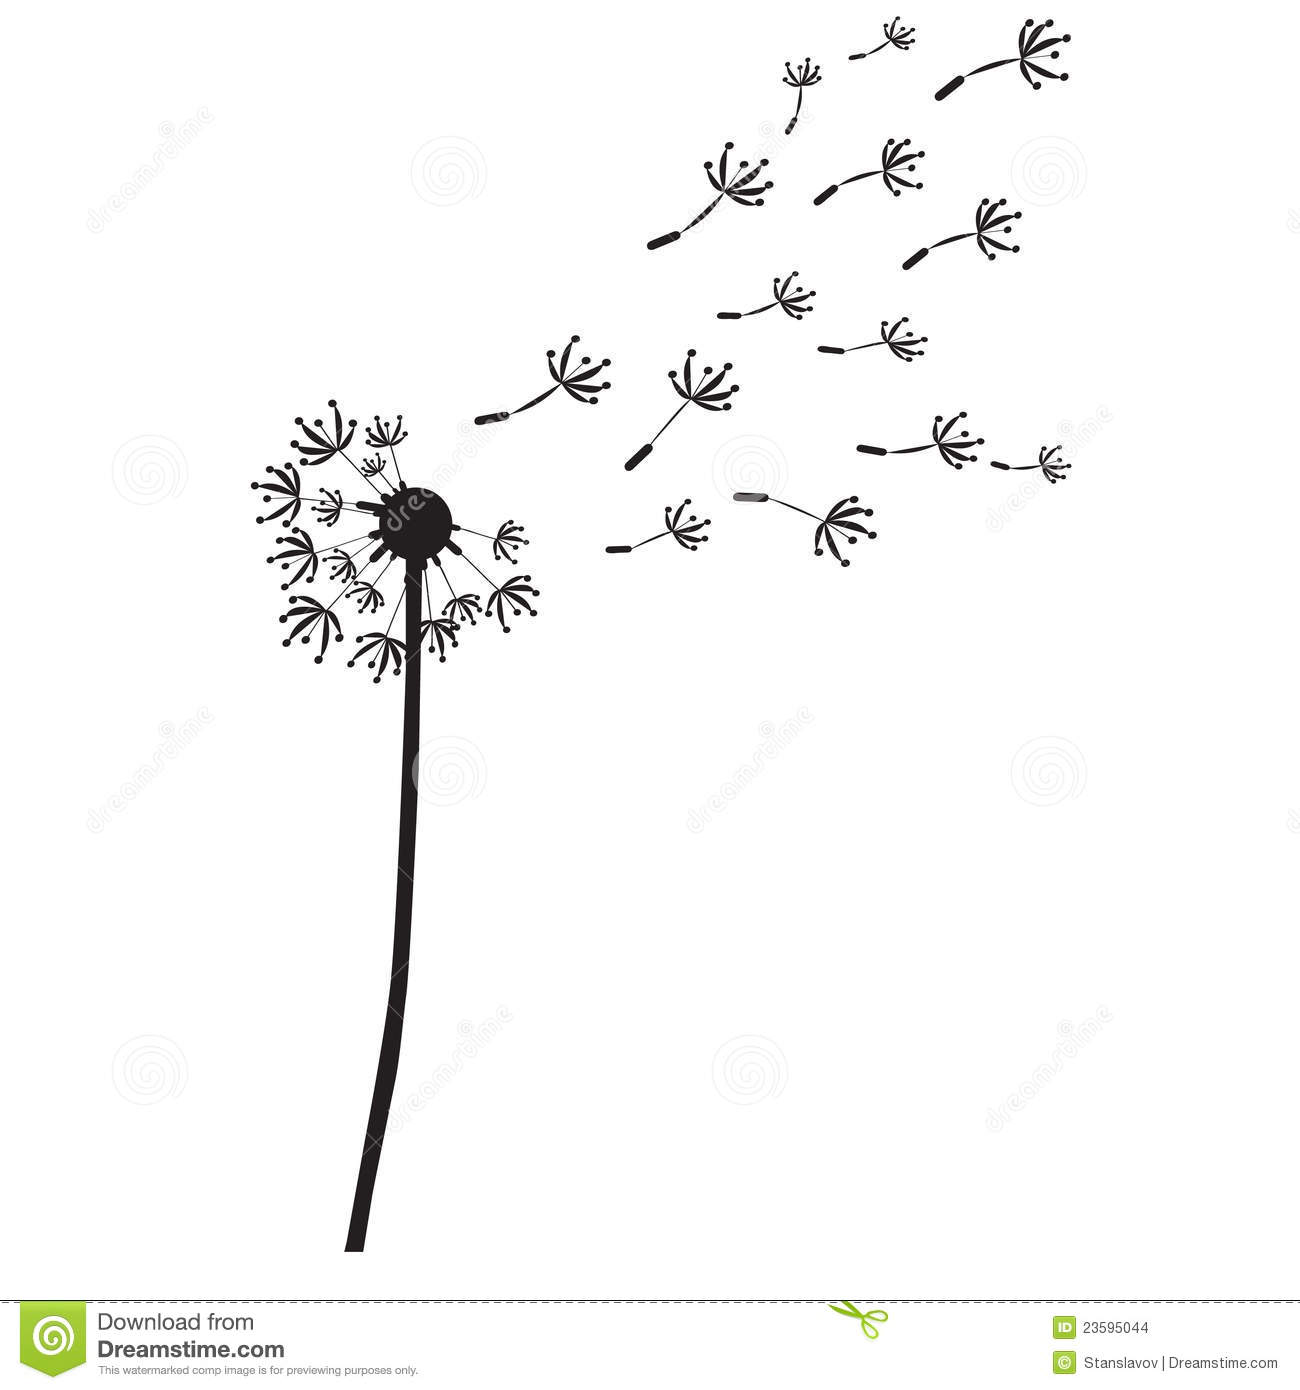 Dandelion Outline Silhouette Stock Illustration Illustration Of